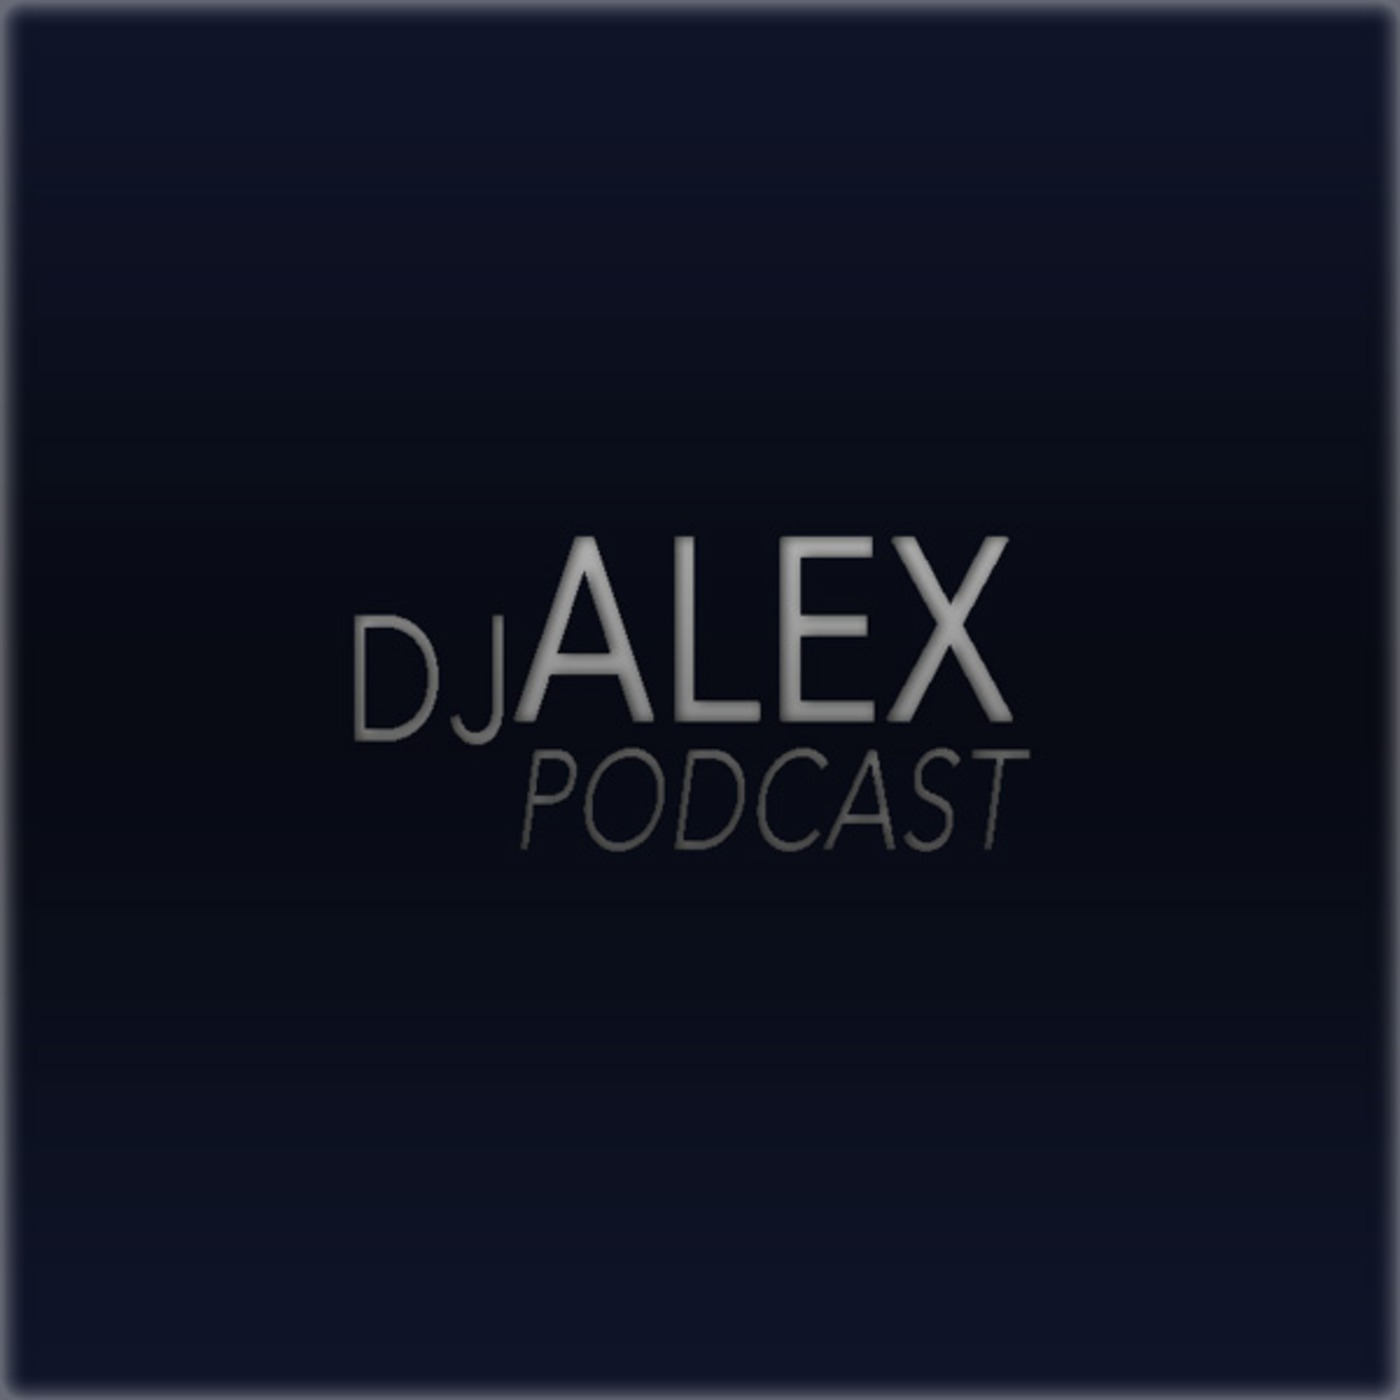 DJ Alex podcast